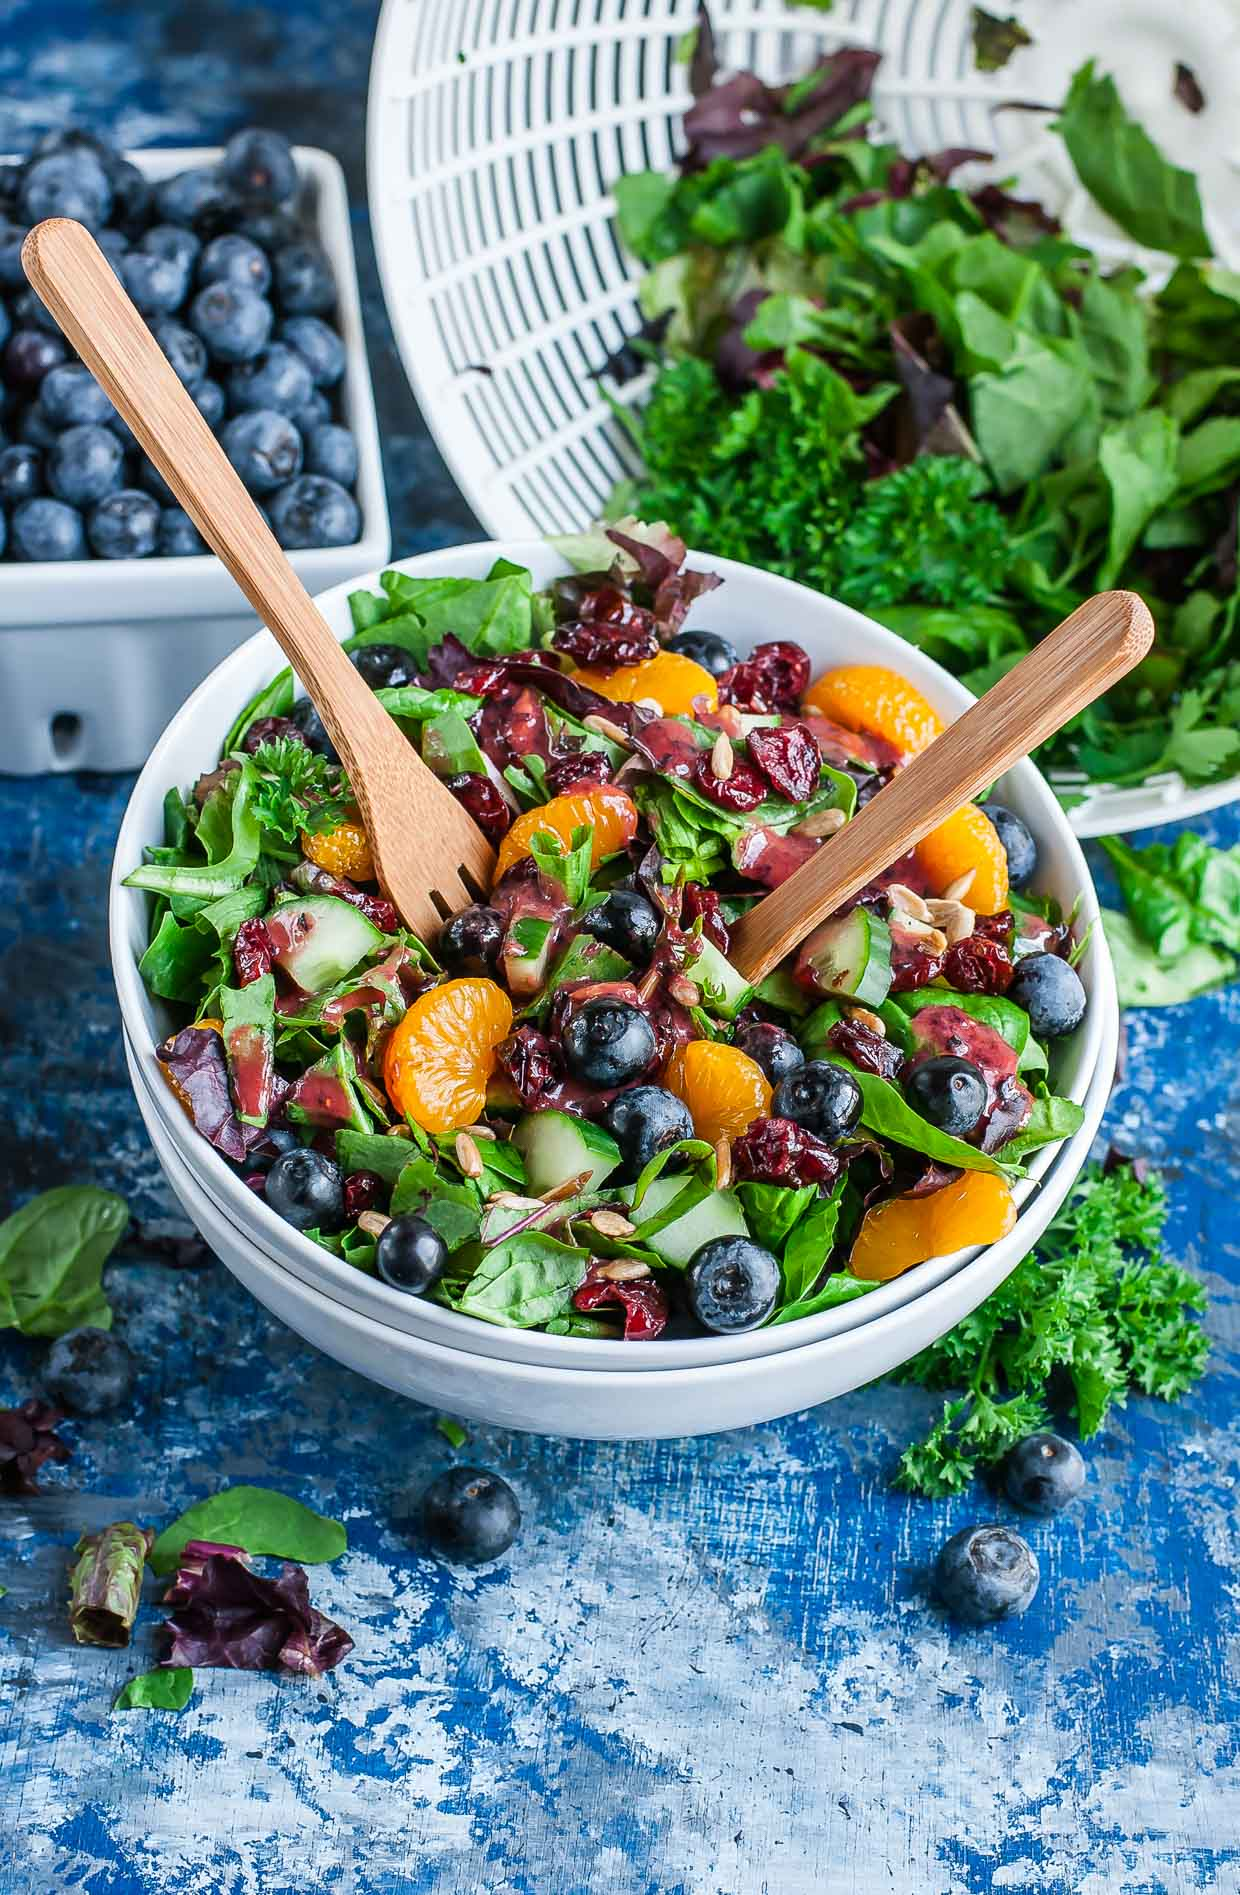 Cranberry Blueberry Salad topped with Blueberry Balsamic Dressing